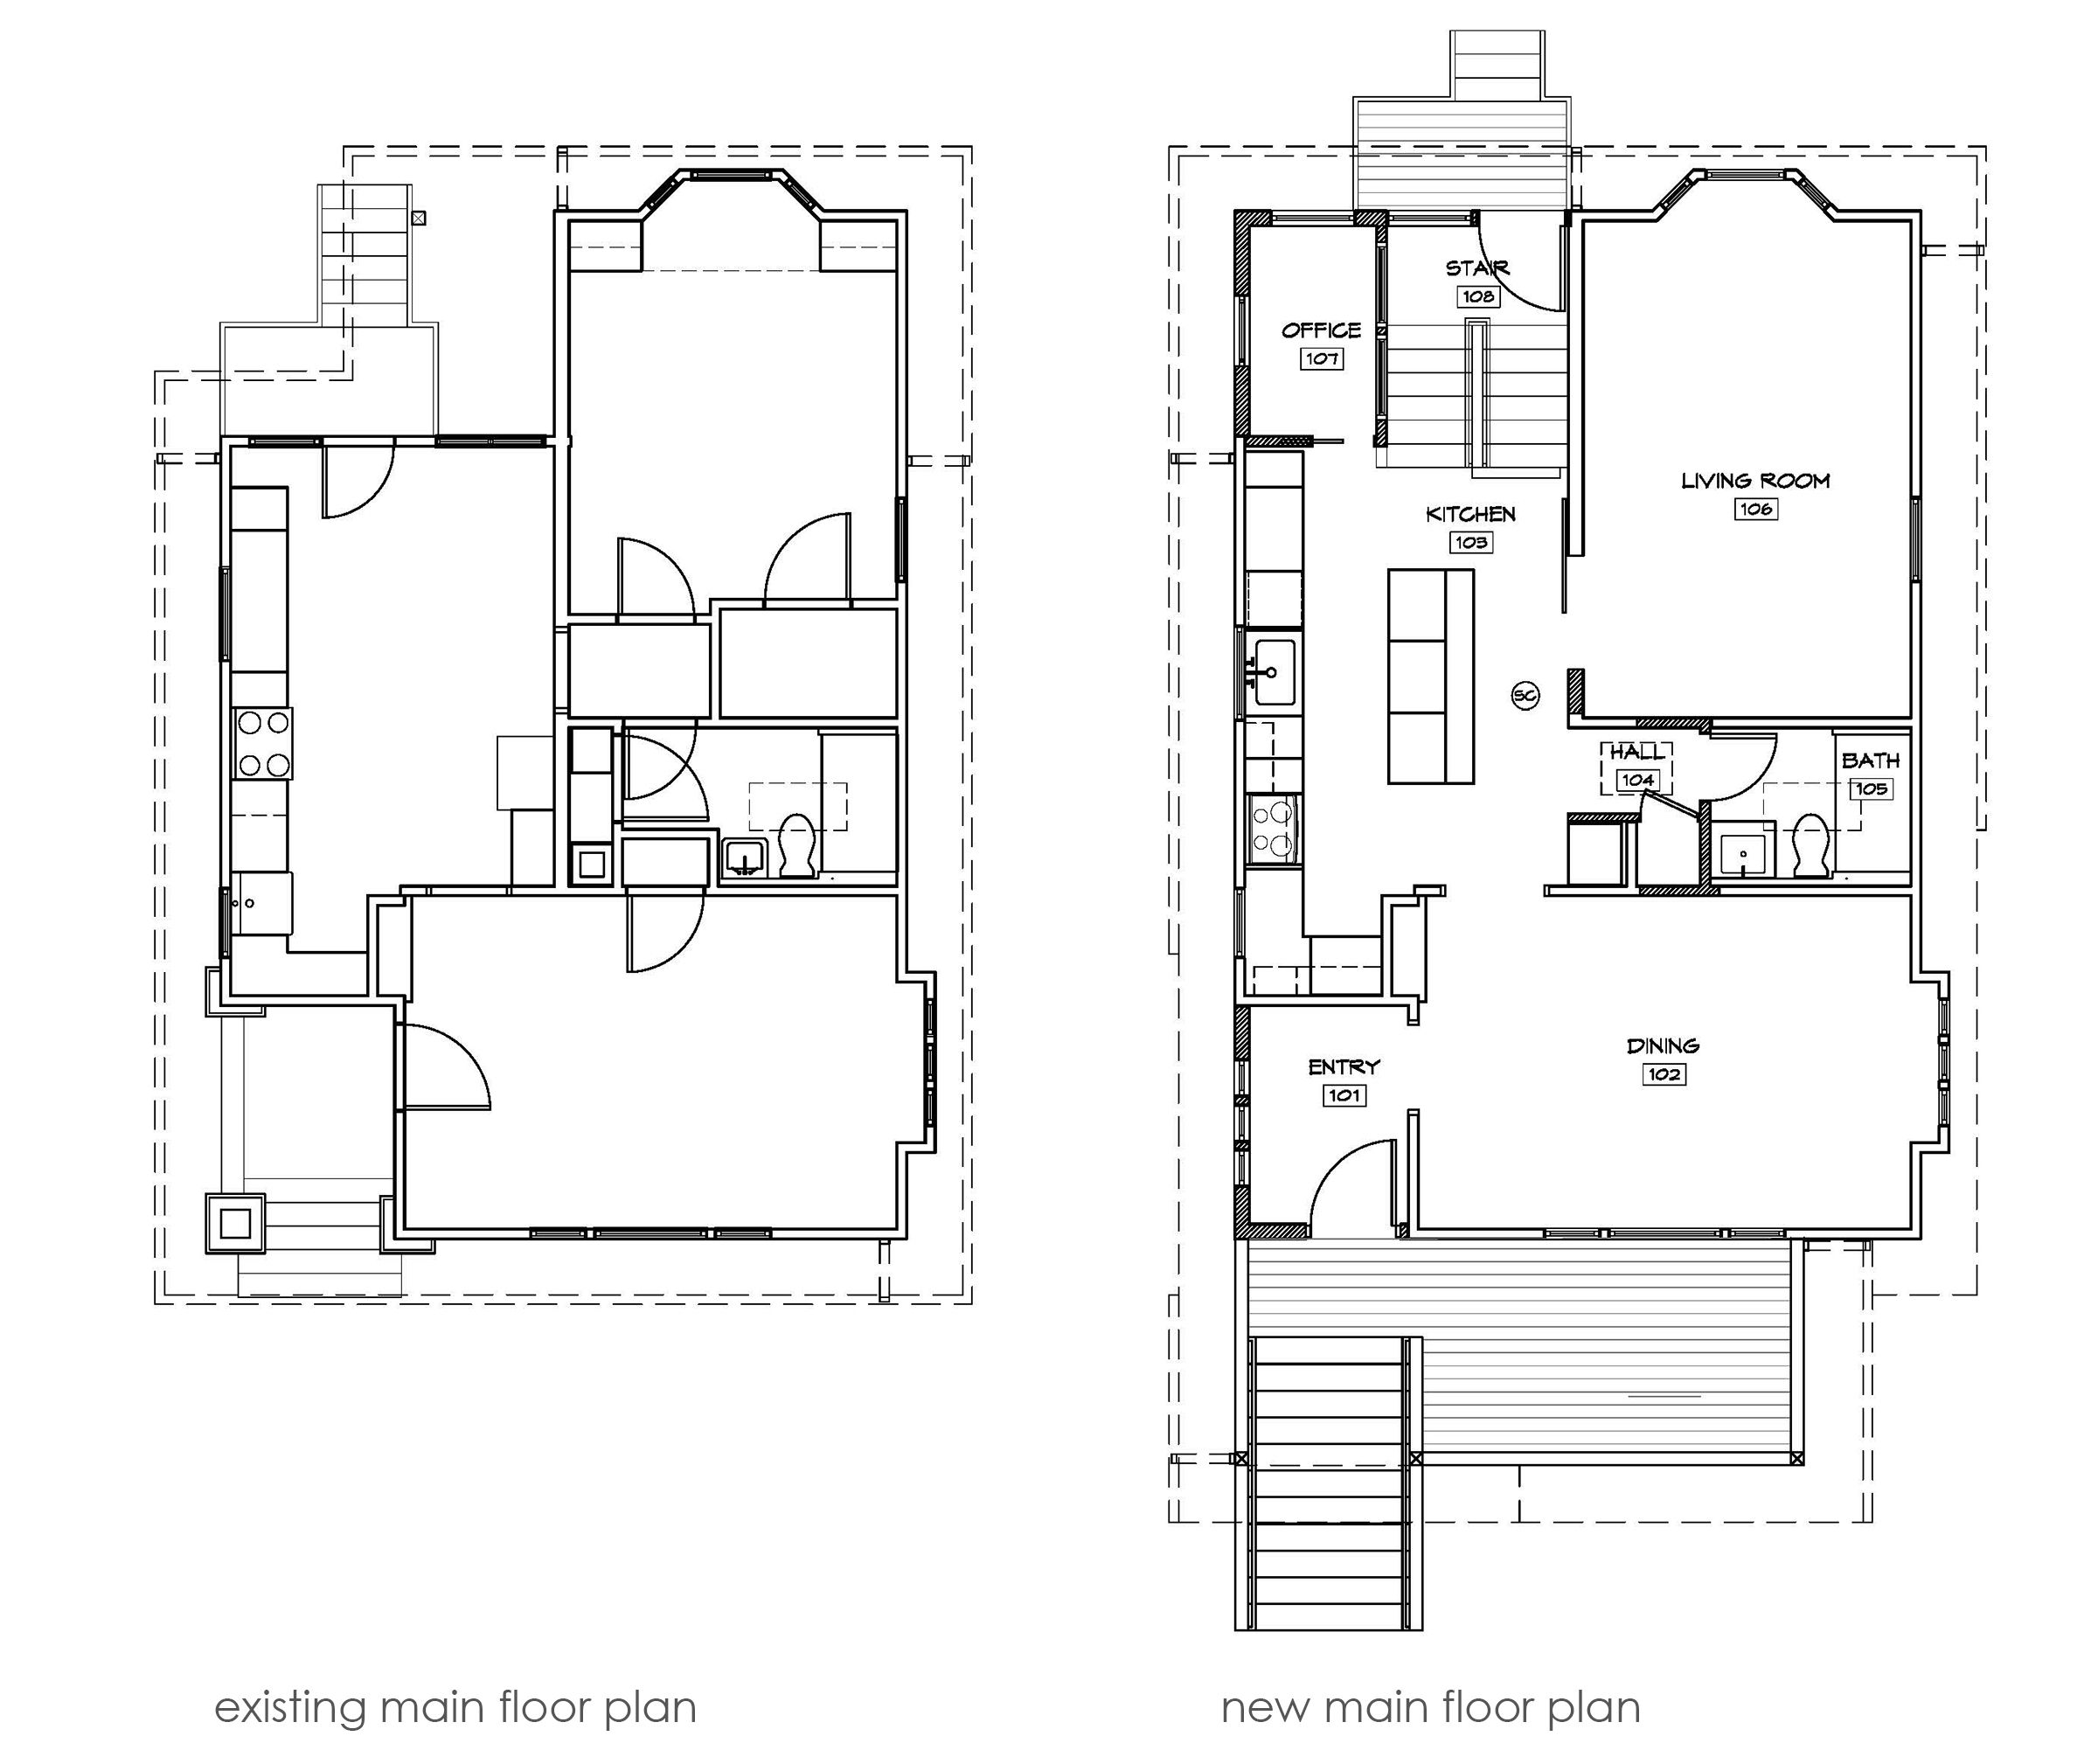 House exterior basement first floor second floor google search two architects on a diy mission to remodel their 1910 fixer upper in seattle into a modern and sustainable home for their growing family malvernweather Choice Image